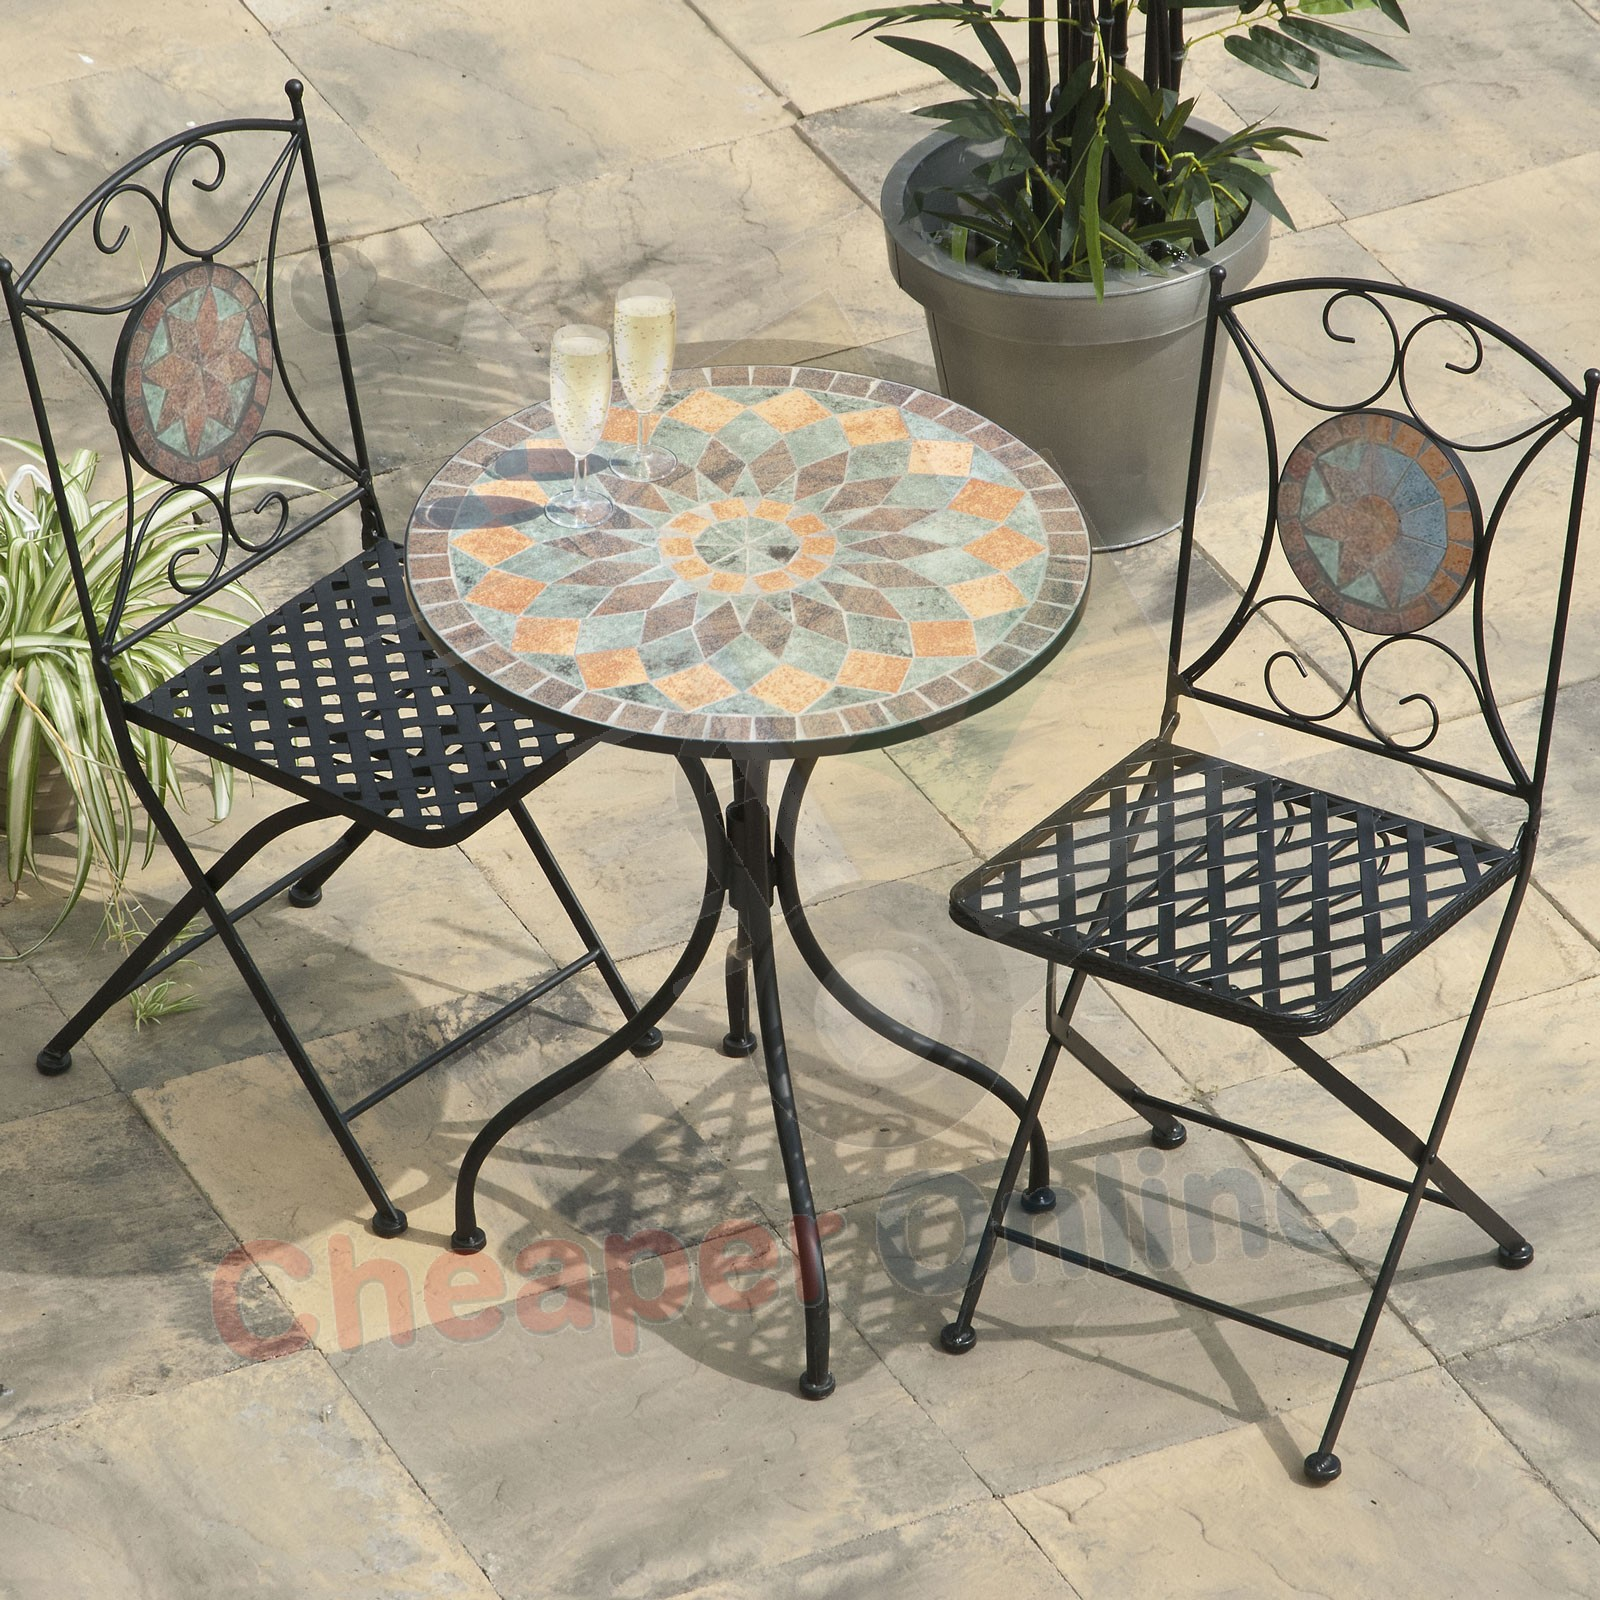 decorating mosaic table art bistro ceramic tile mosaictable set outdoor side how accent indoor full size silver wood coffee standard height square patio cover white glass cabinet